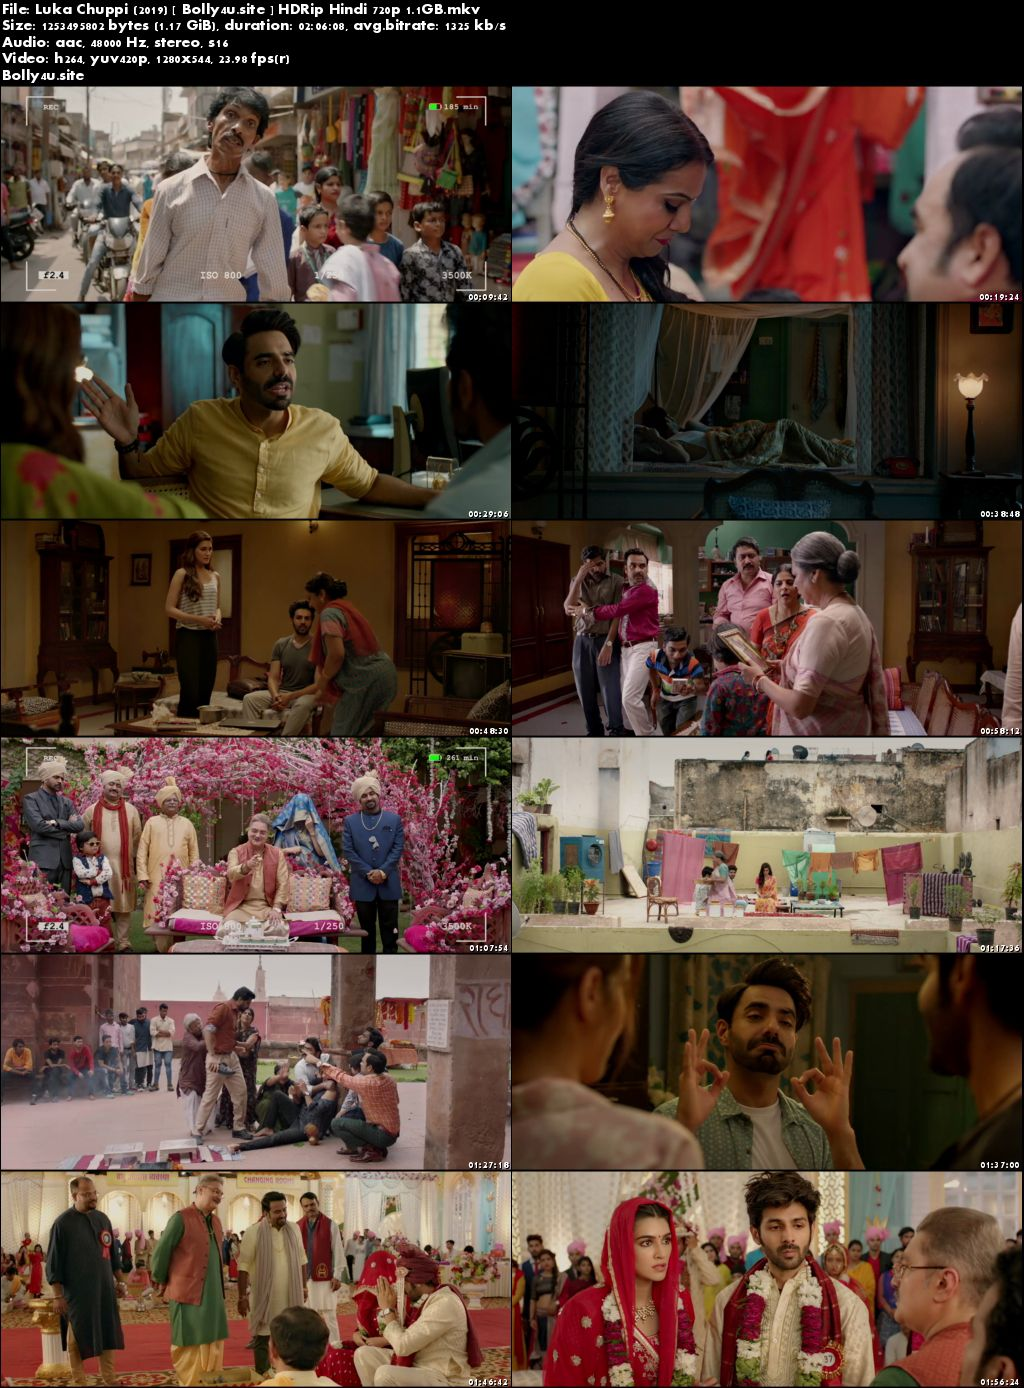 Luka Chuppi 2019 HDRip 1.1GB Hindi 720p x264 Download